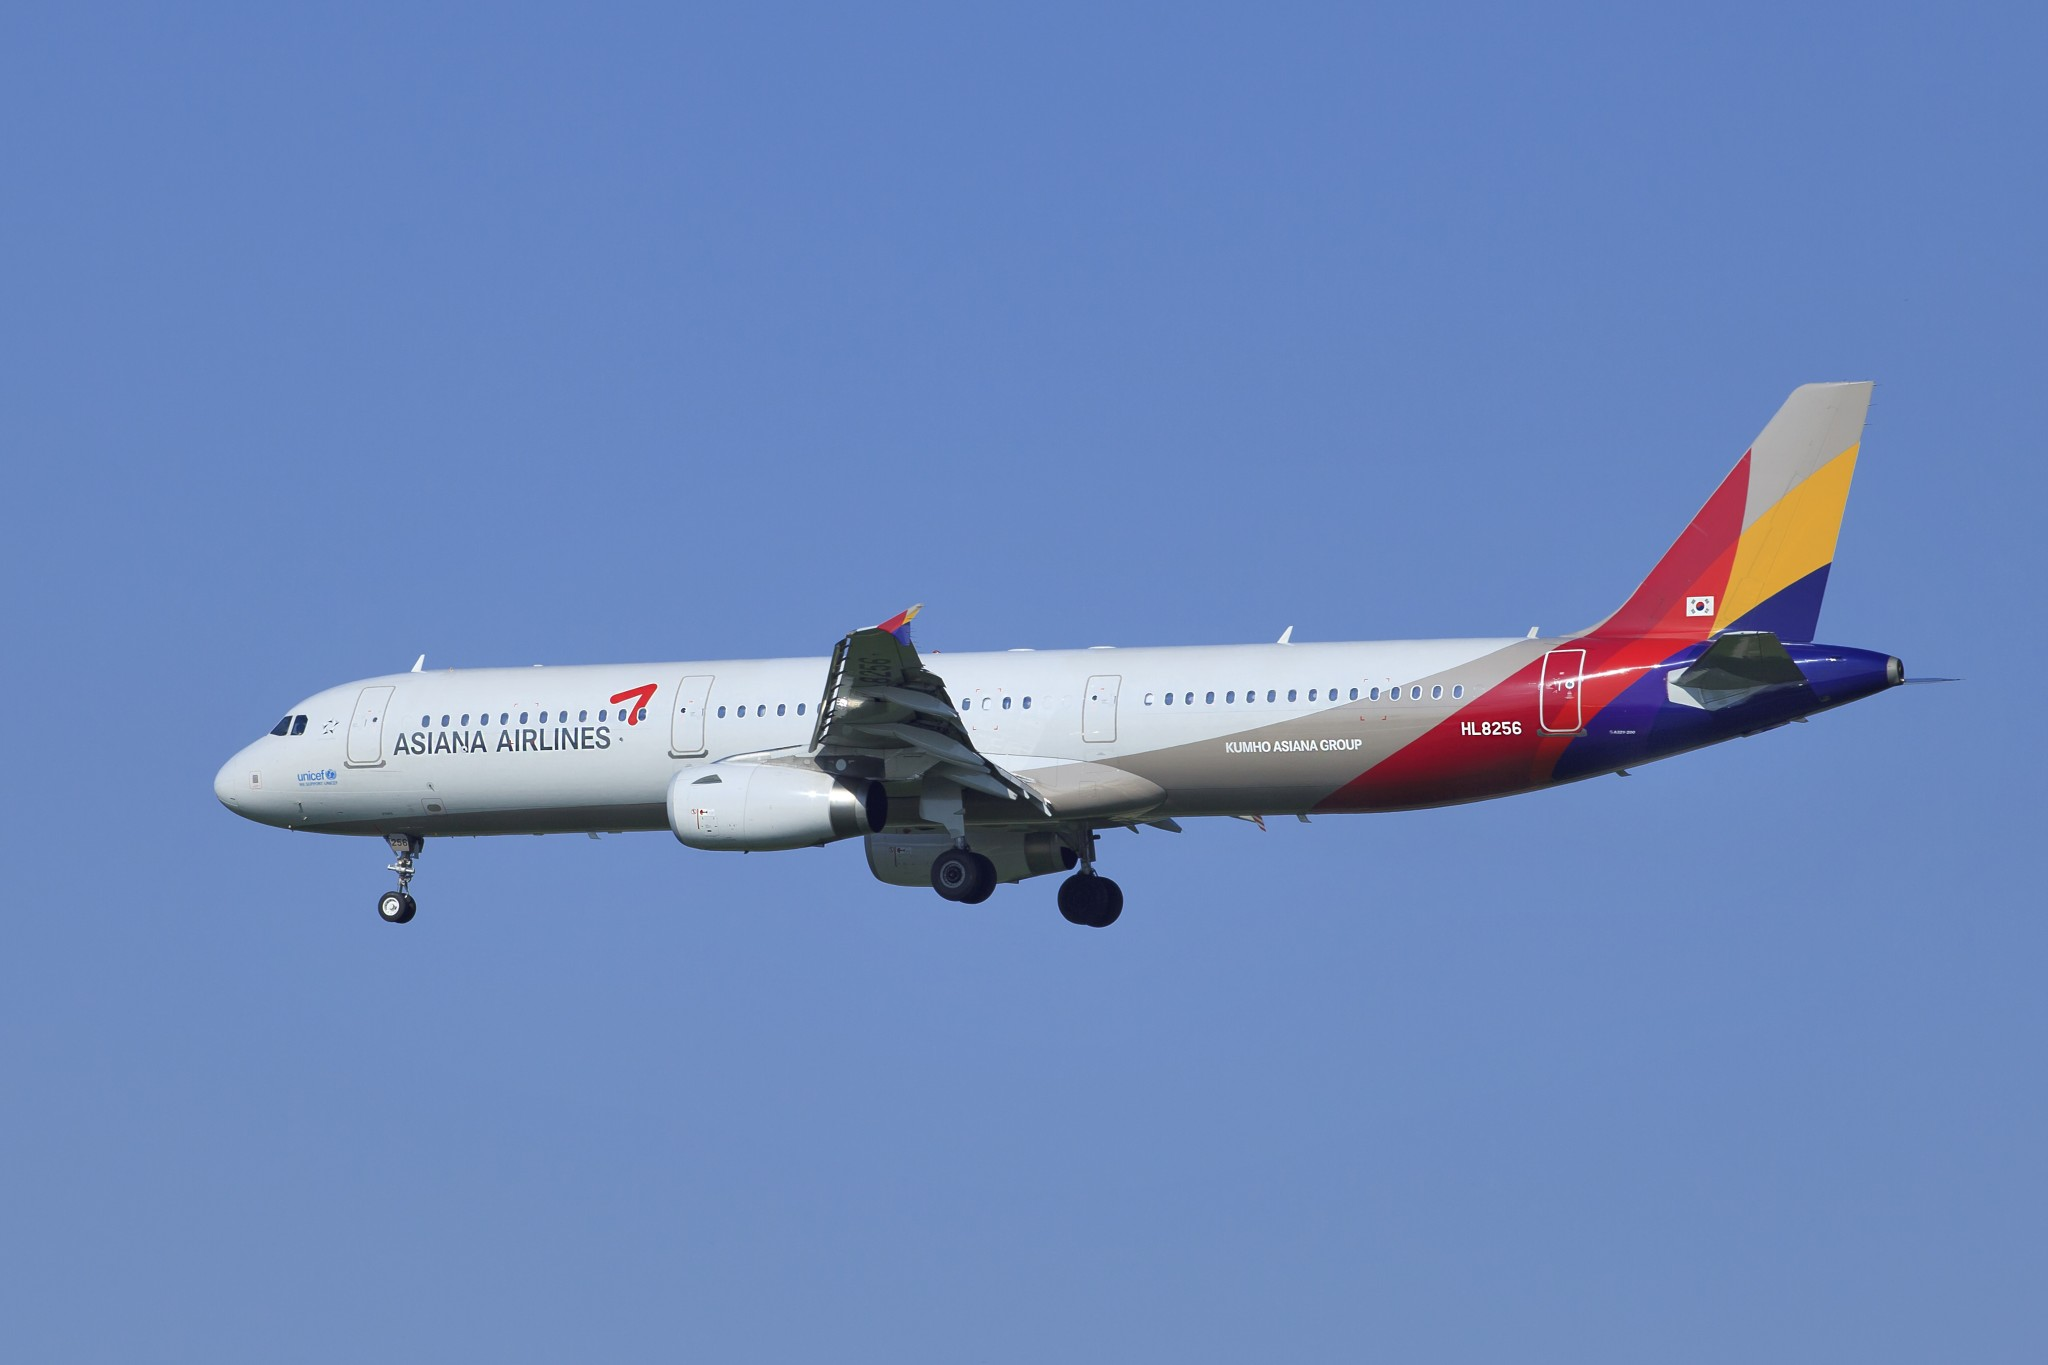 ASIANA AIRLINES A321